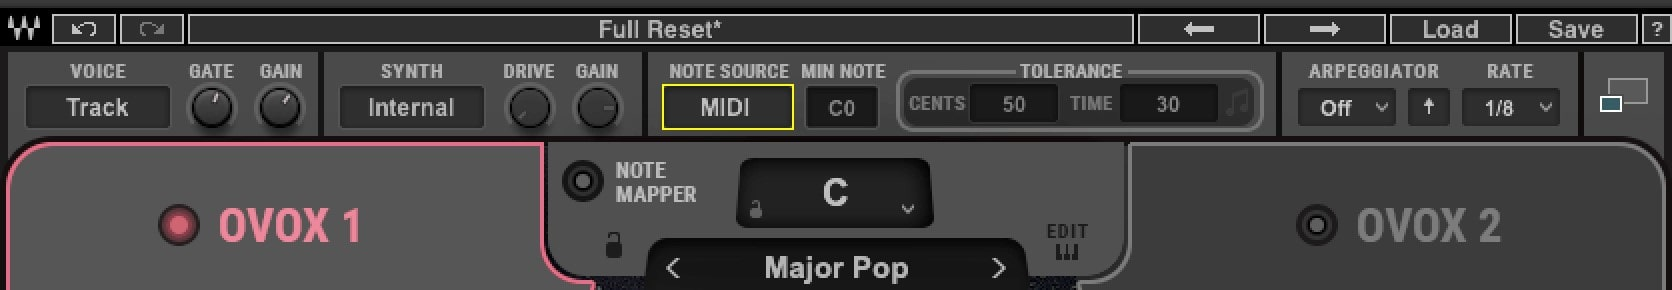 Inside OVox, make sure that 'Note Source' is set to either Auto or MIDI.